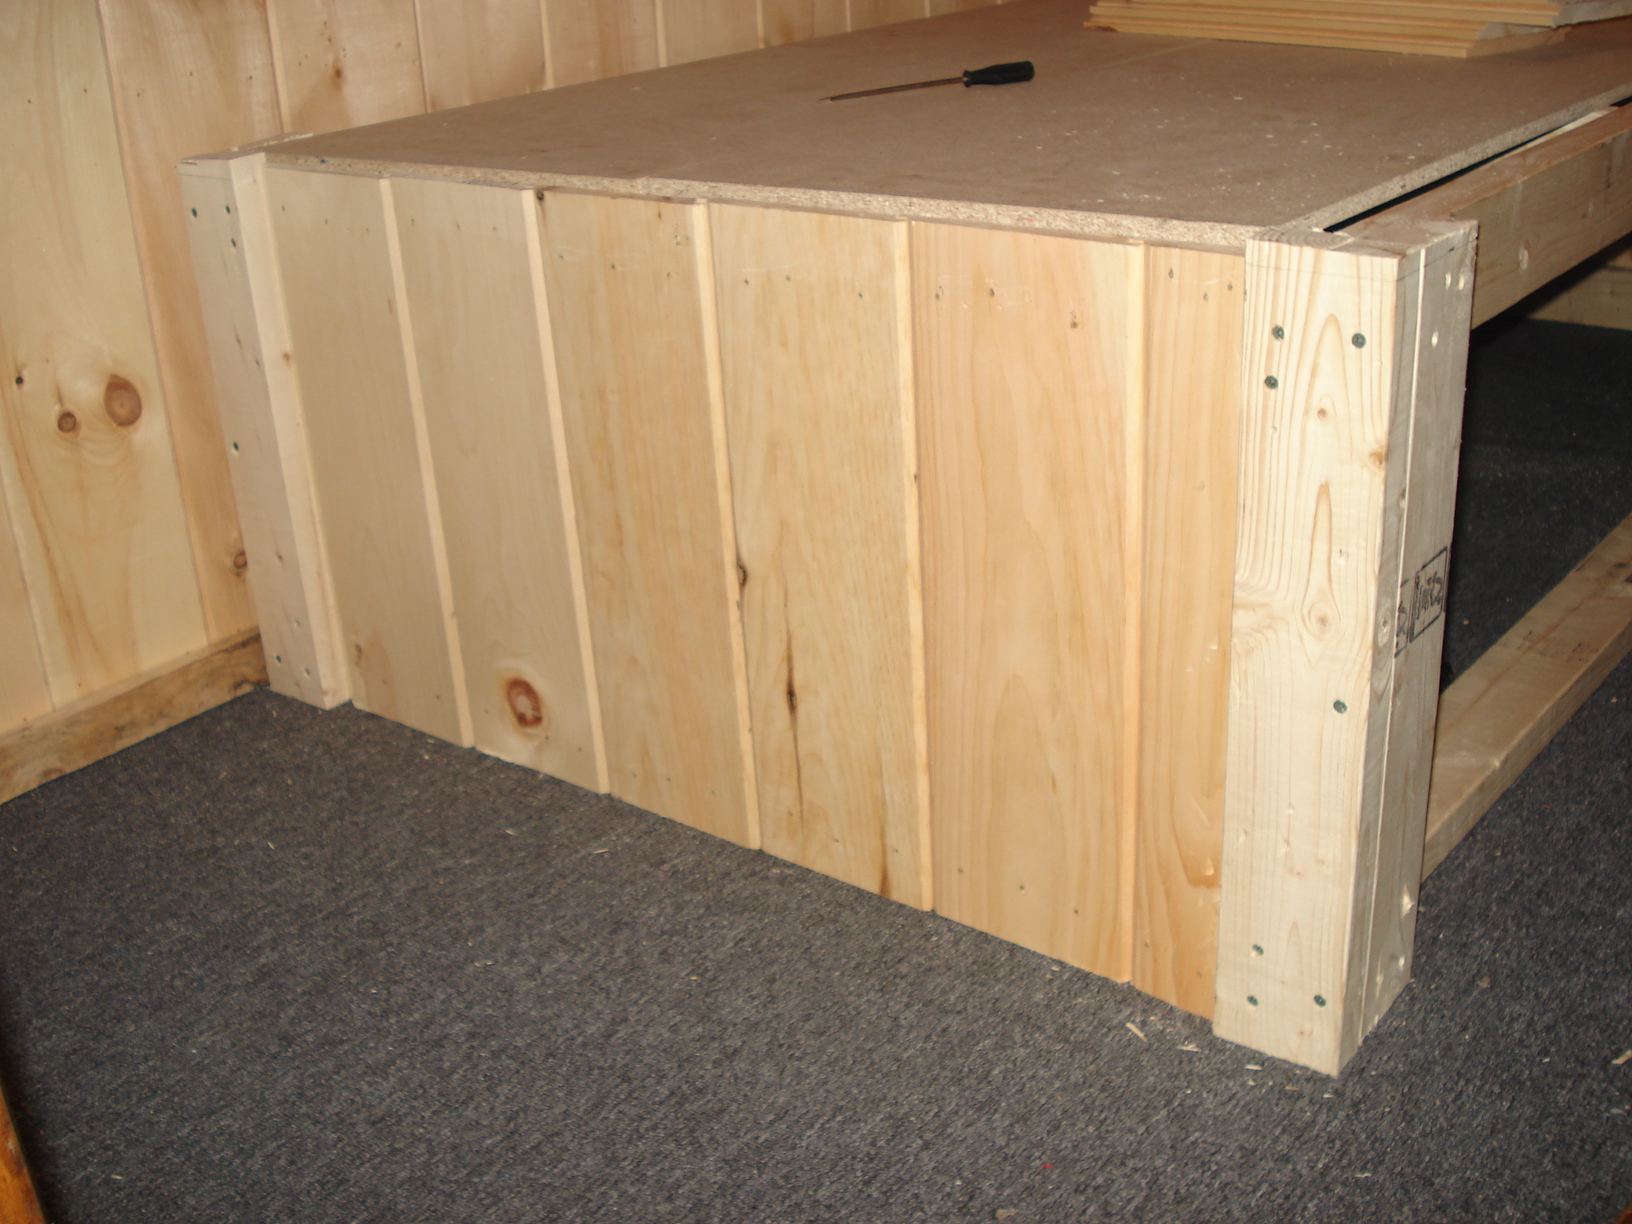 Picture of Raised Cabin Bed Frame With Hidden Space